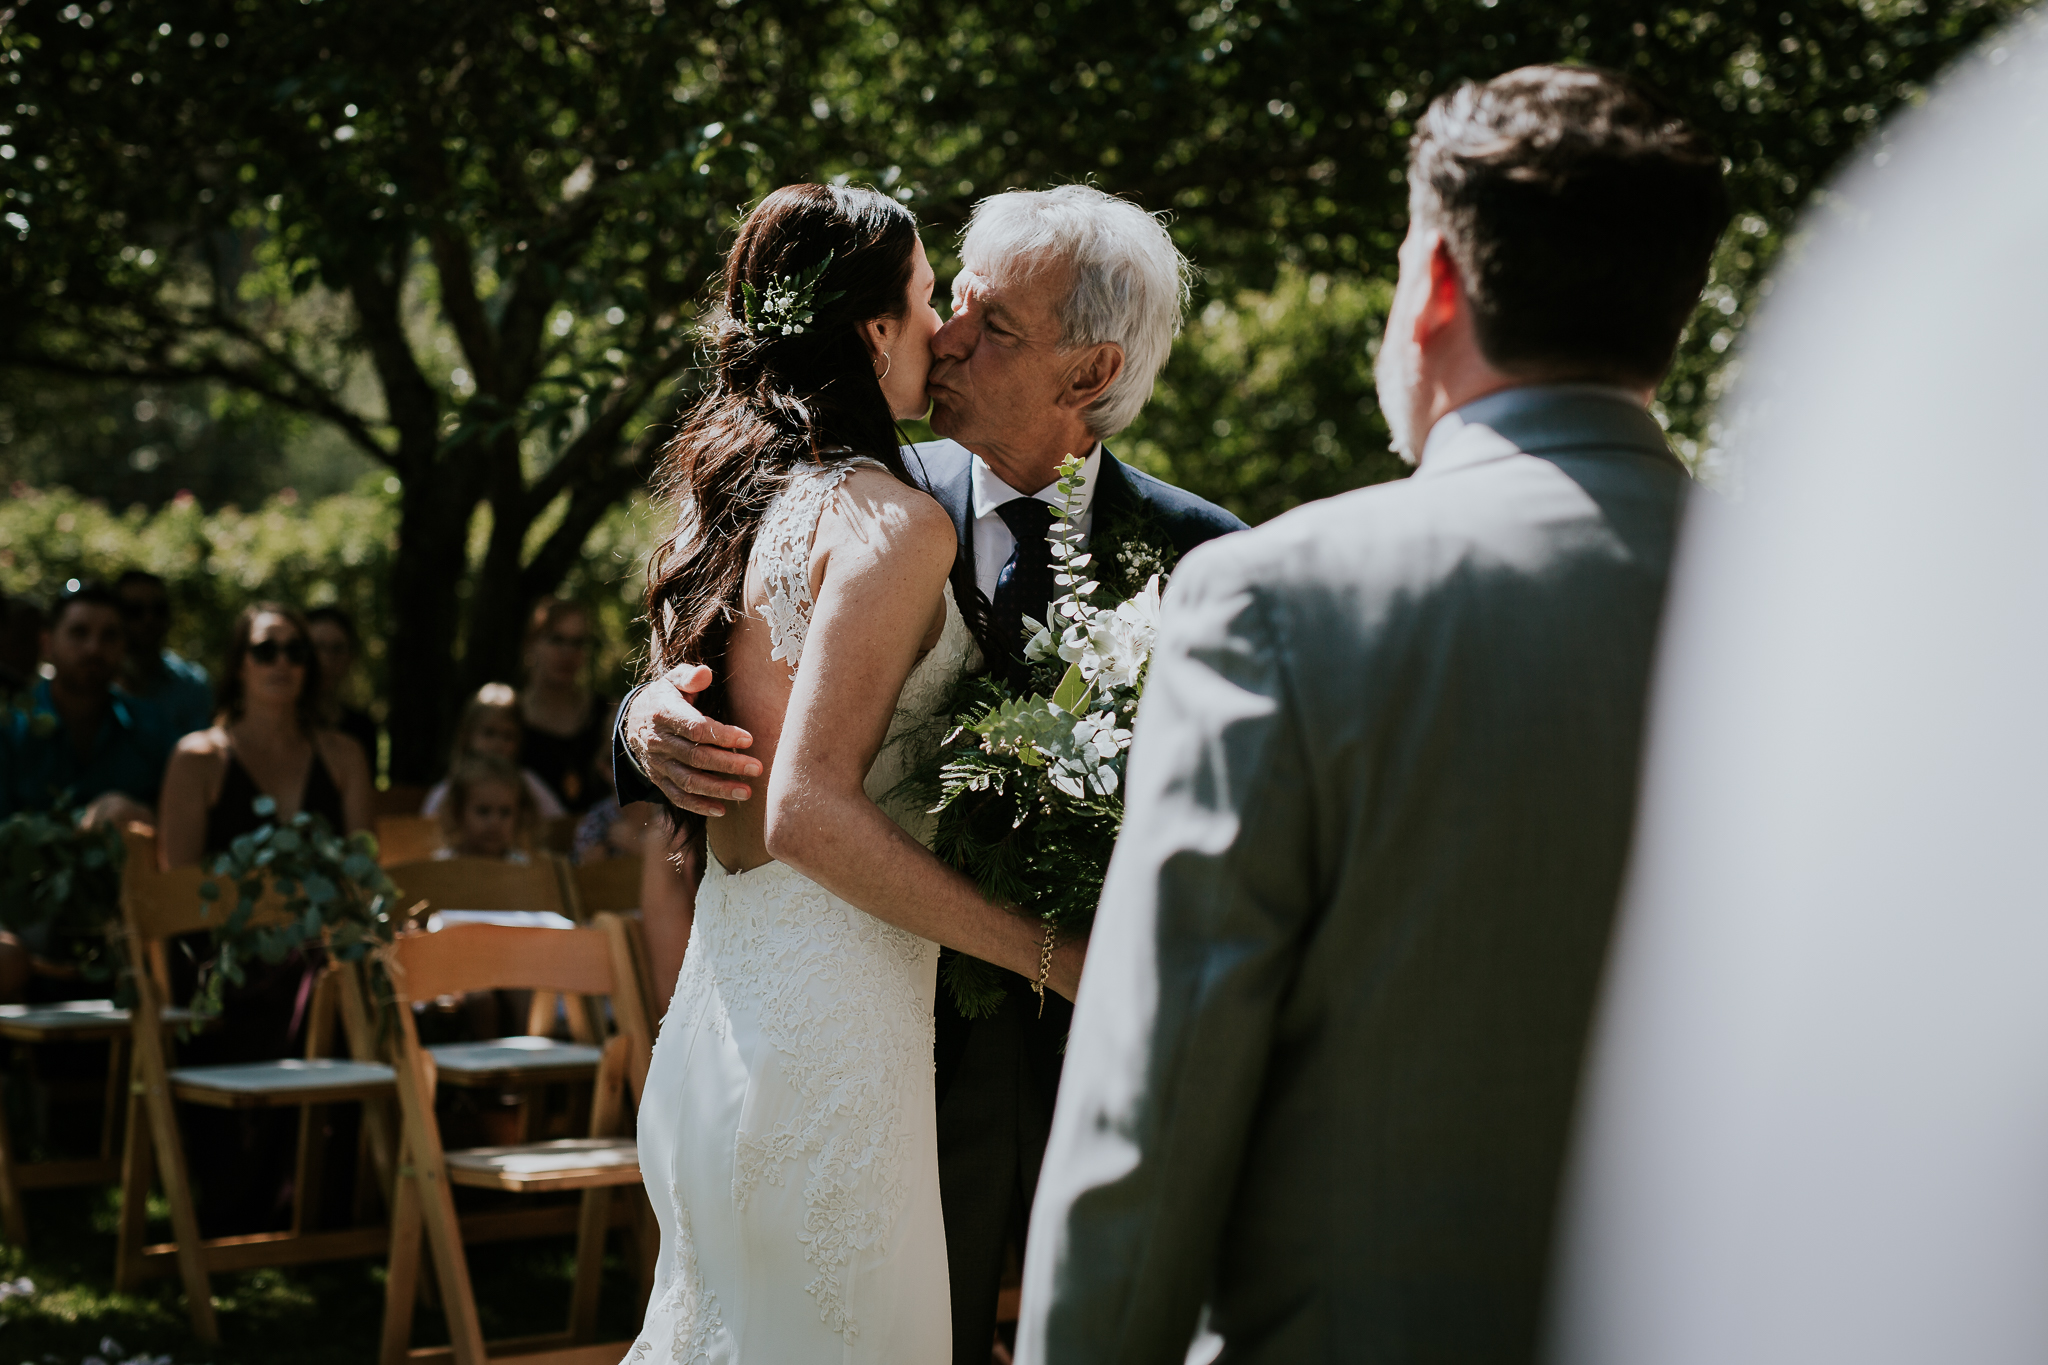 Brides father giving her away during ceremony at Starling Lane winery